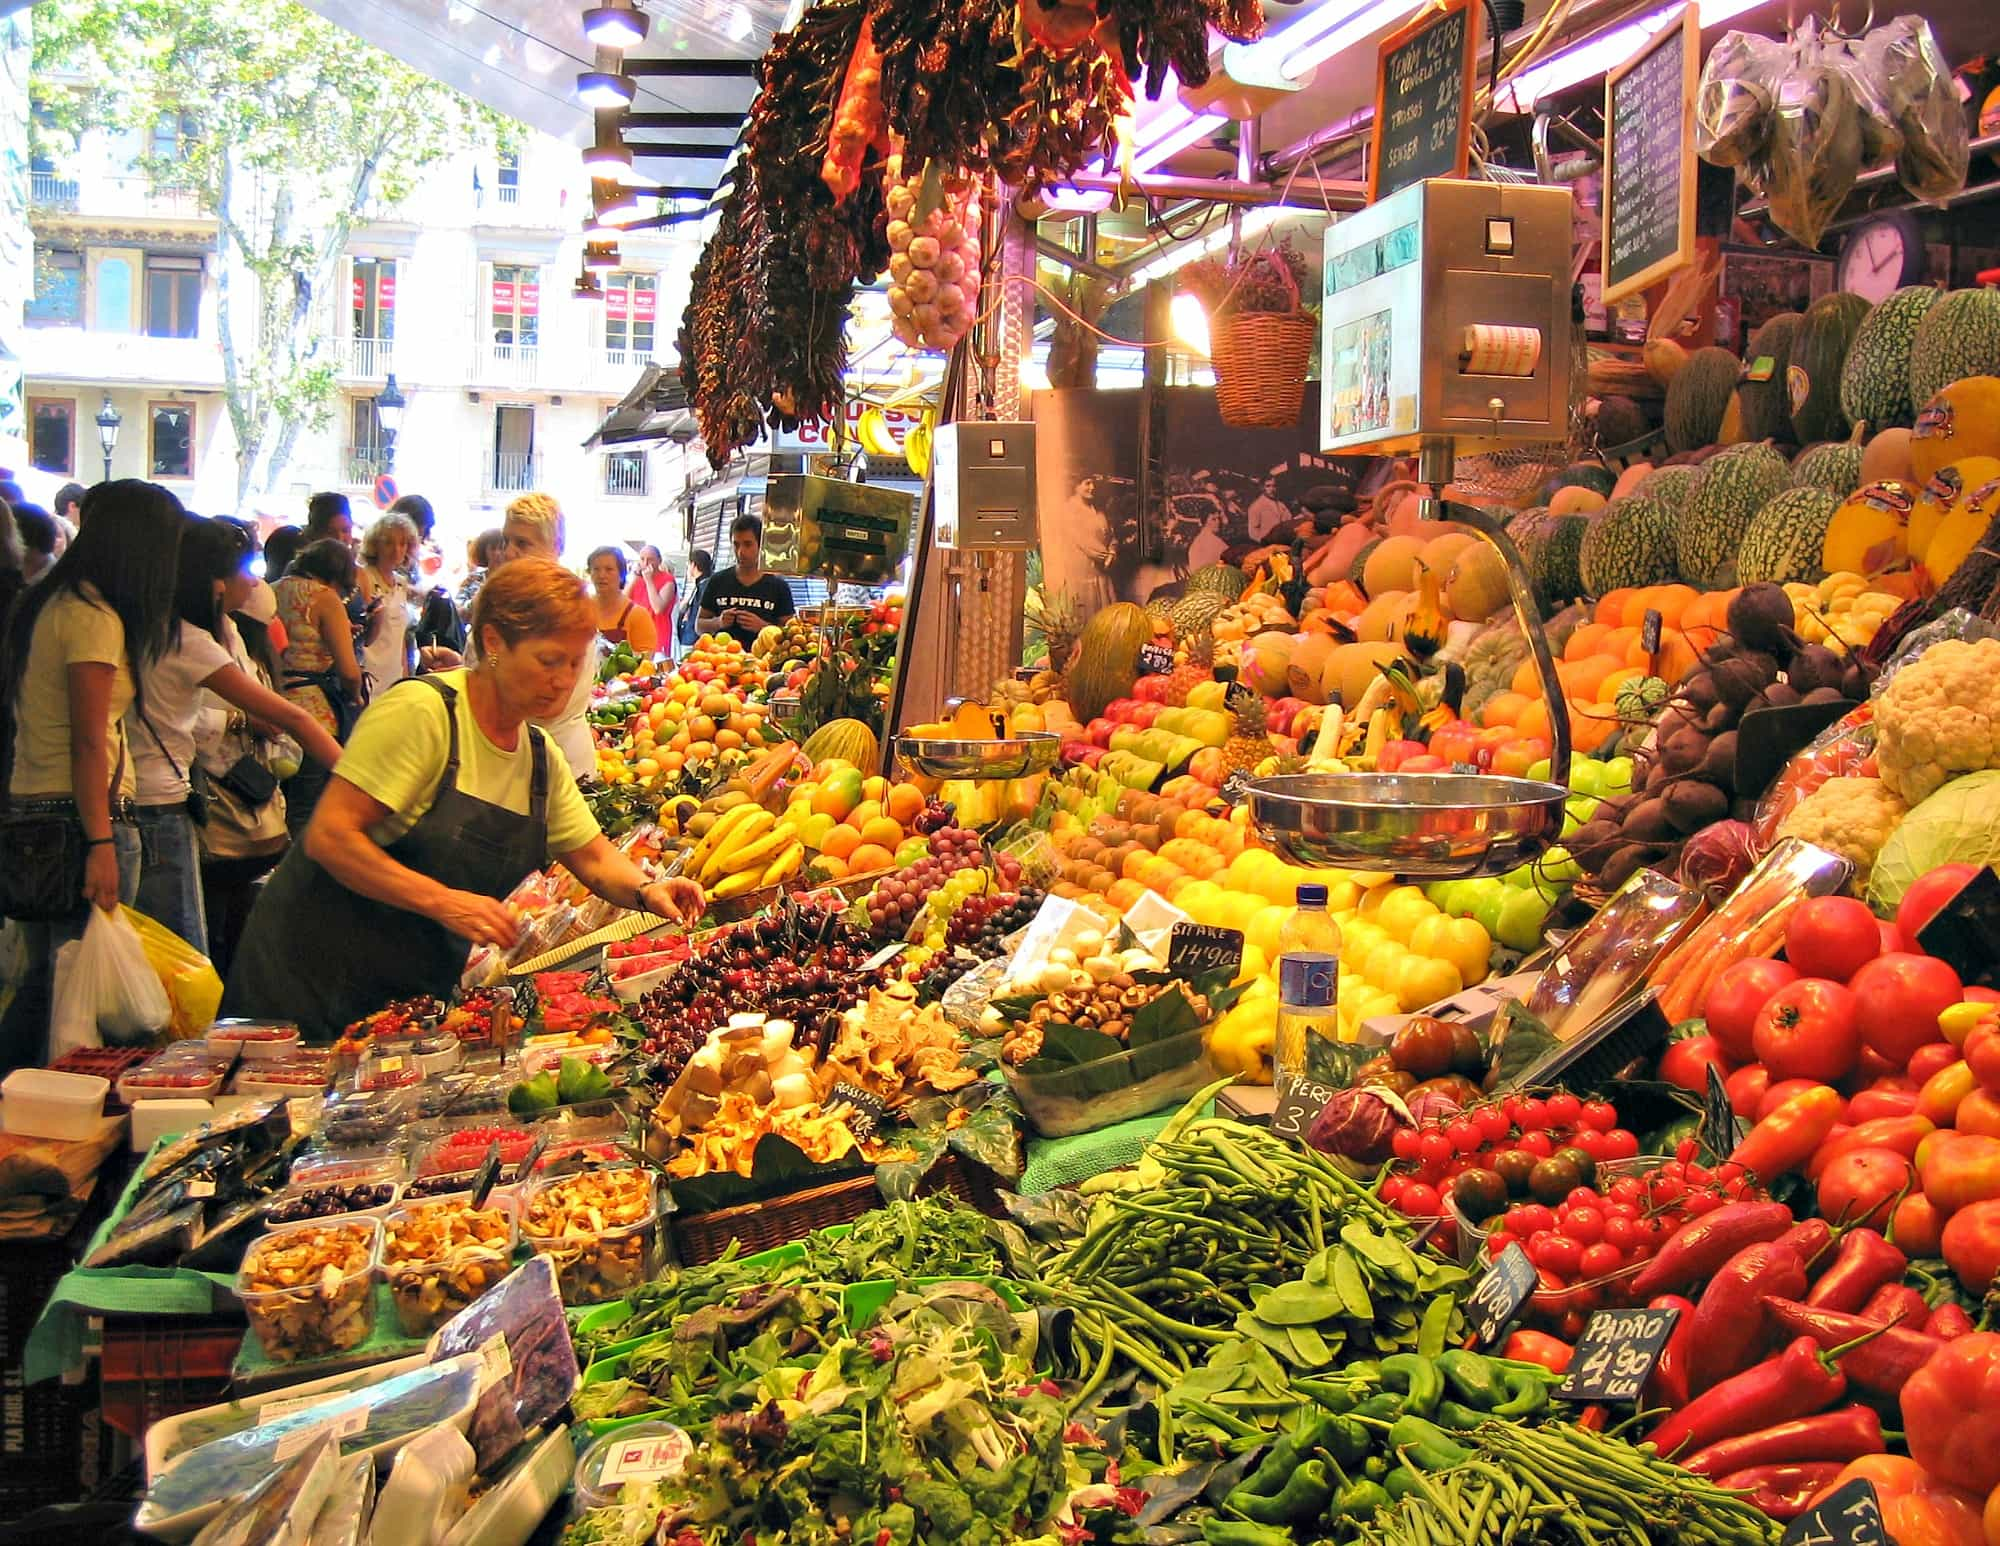 La Boqueria food market along La Rambla in Barcelona with kids